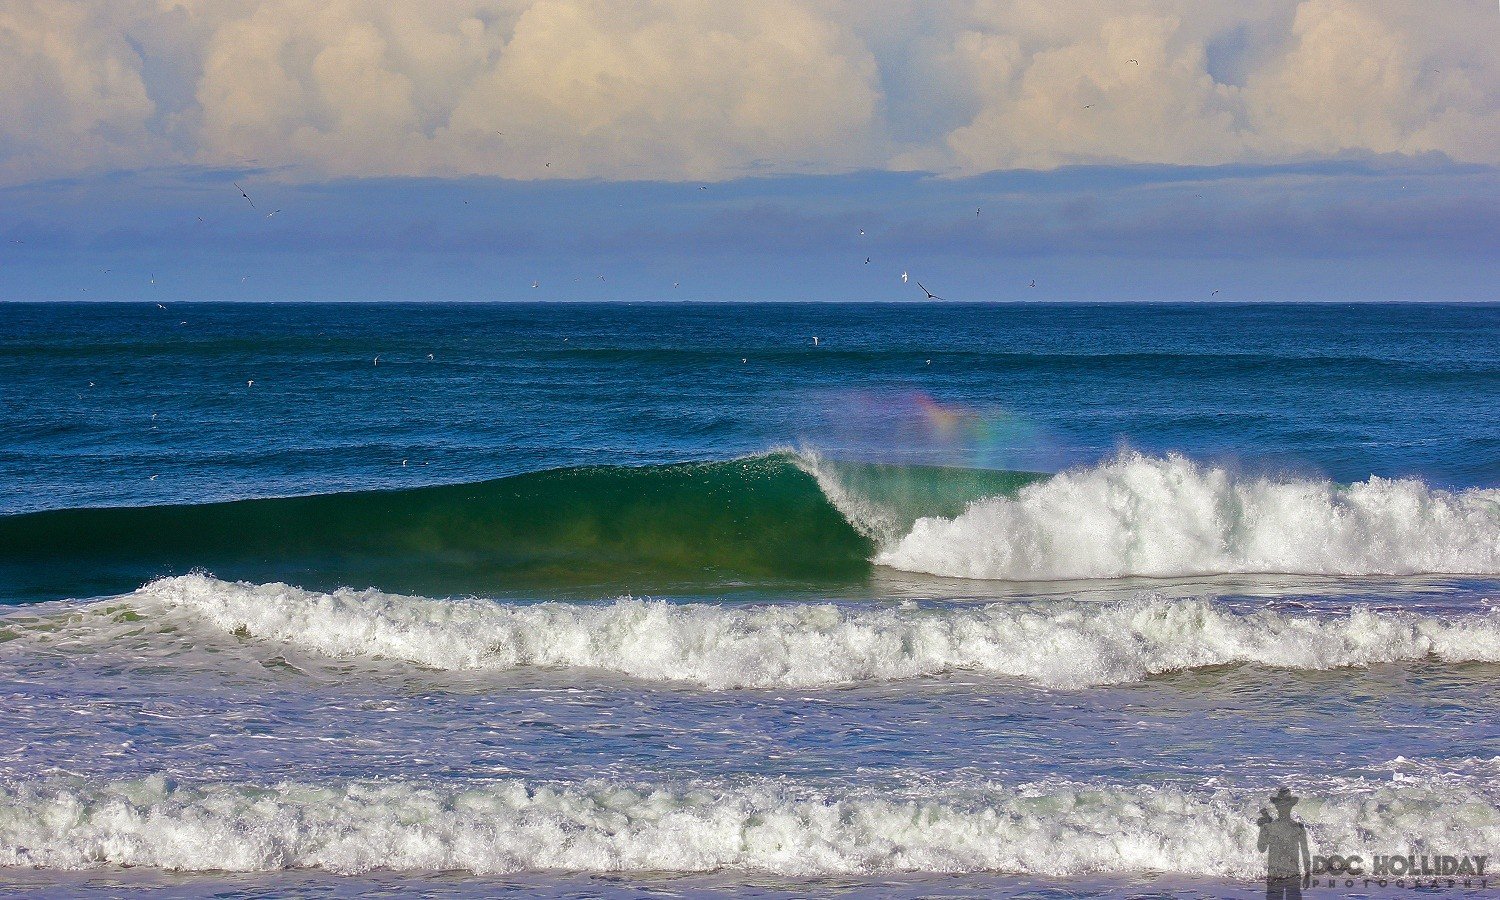 Gus Holliday's photo of Lennox Head